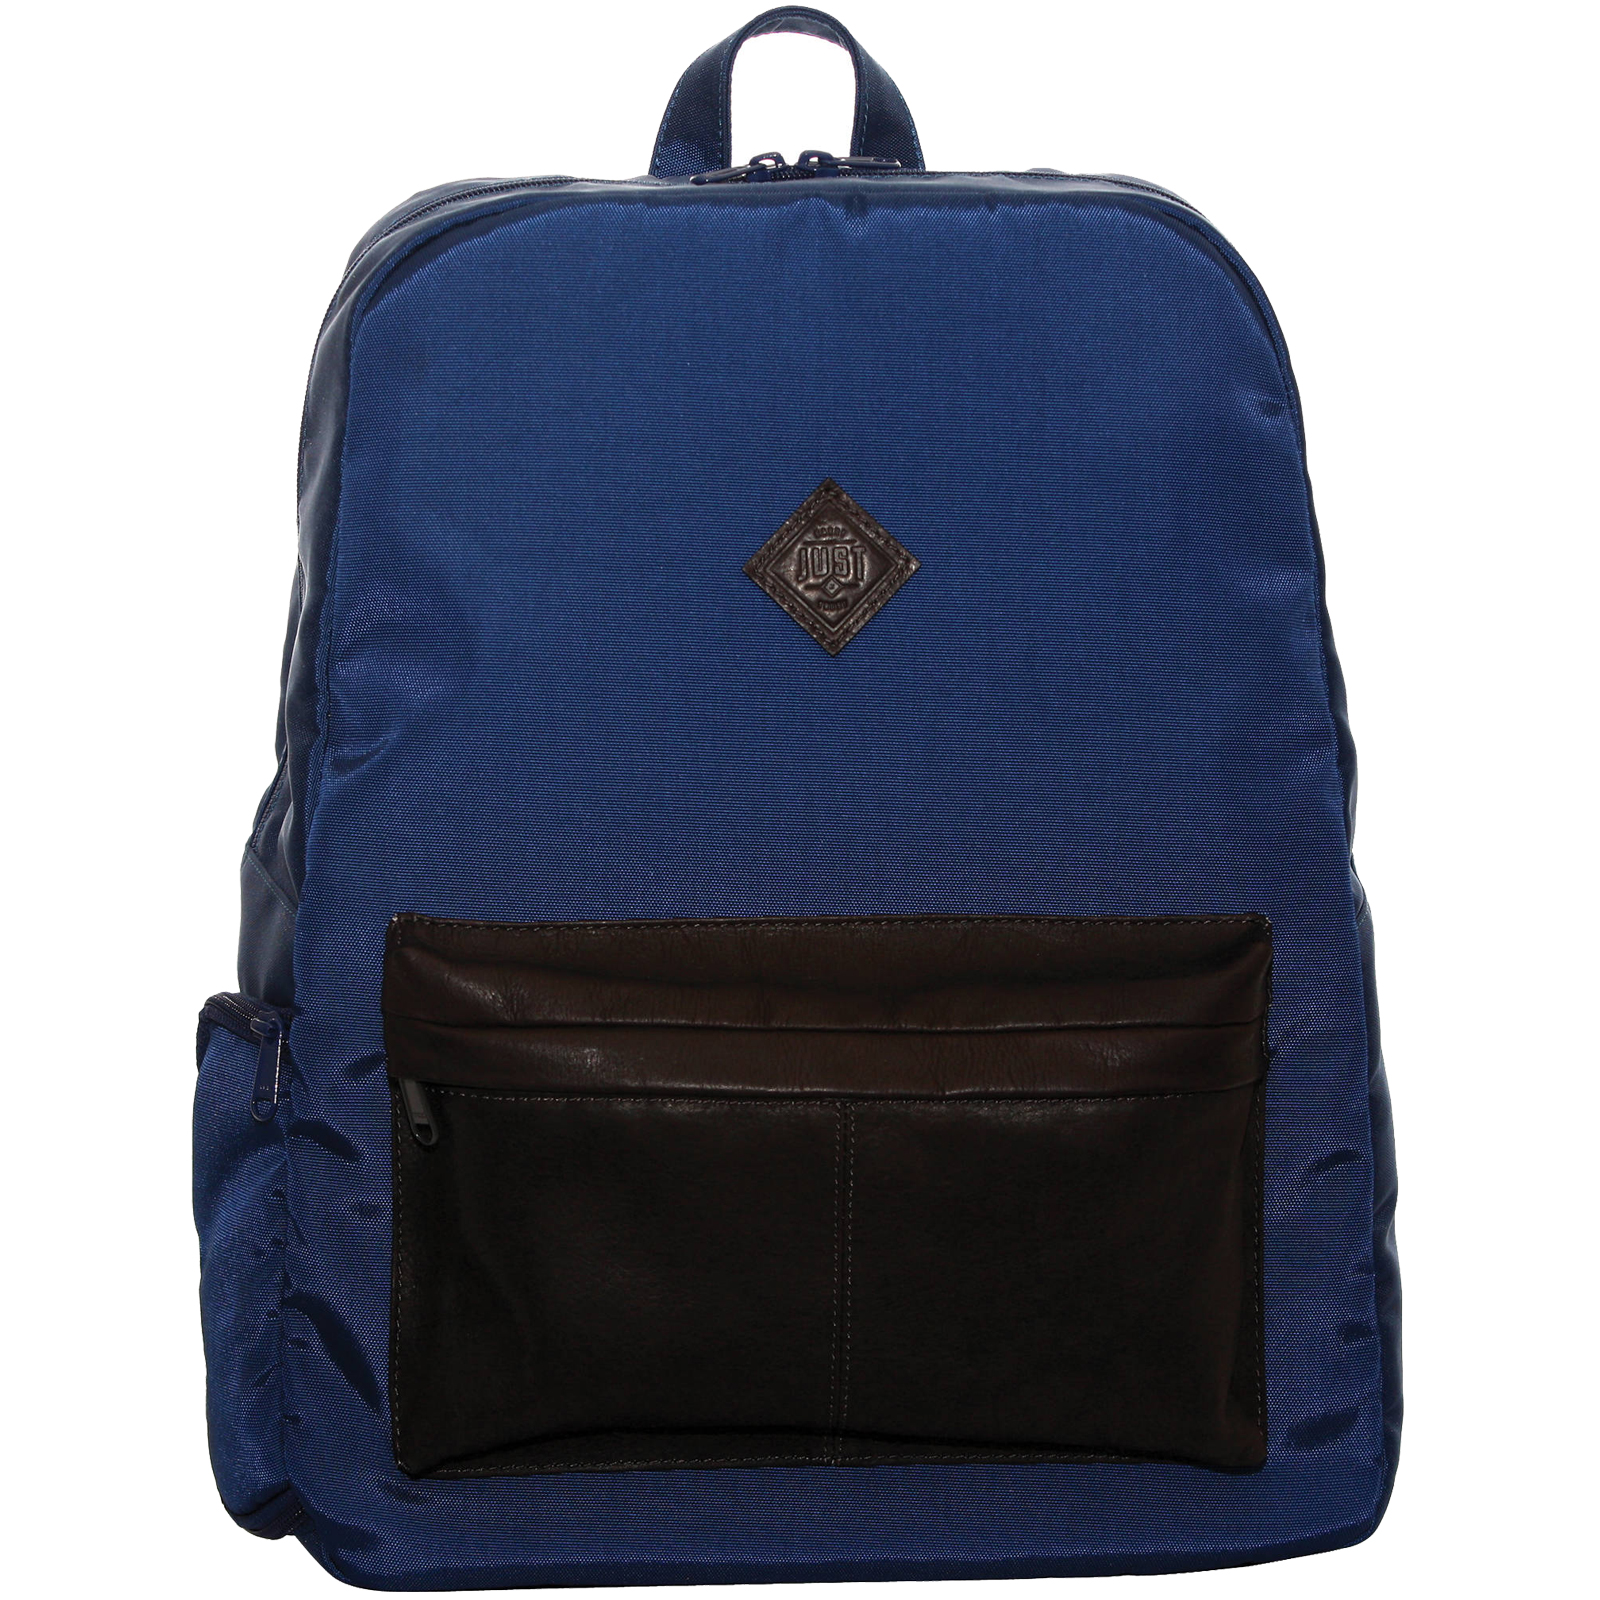 "Jill-E 15"" Just Dupont Laptop Backpack Case (Blue/Black)"